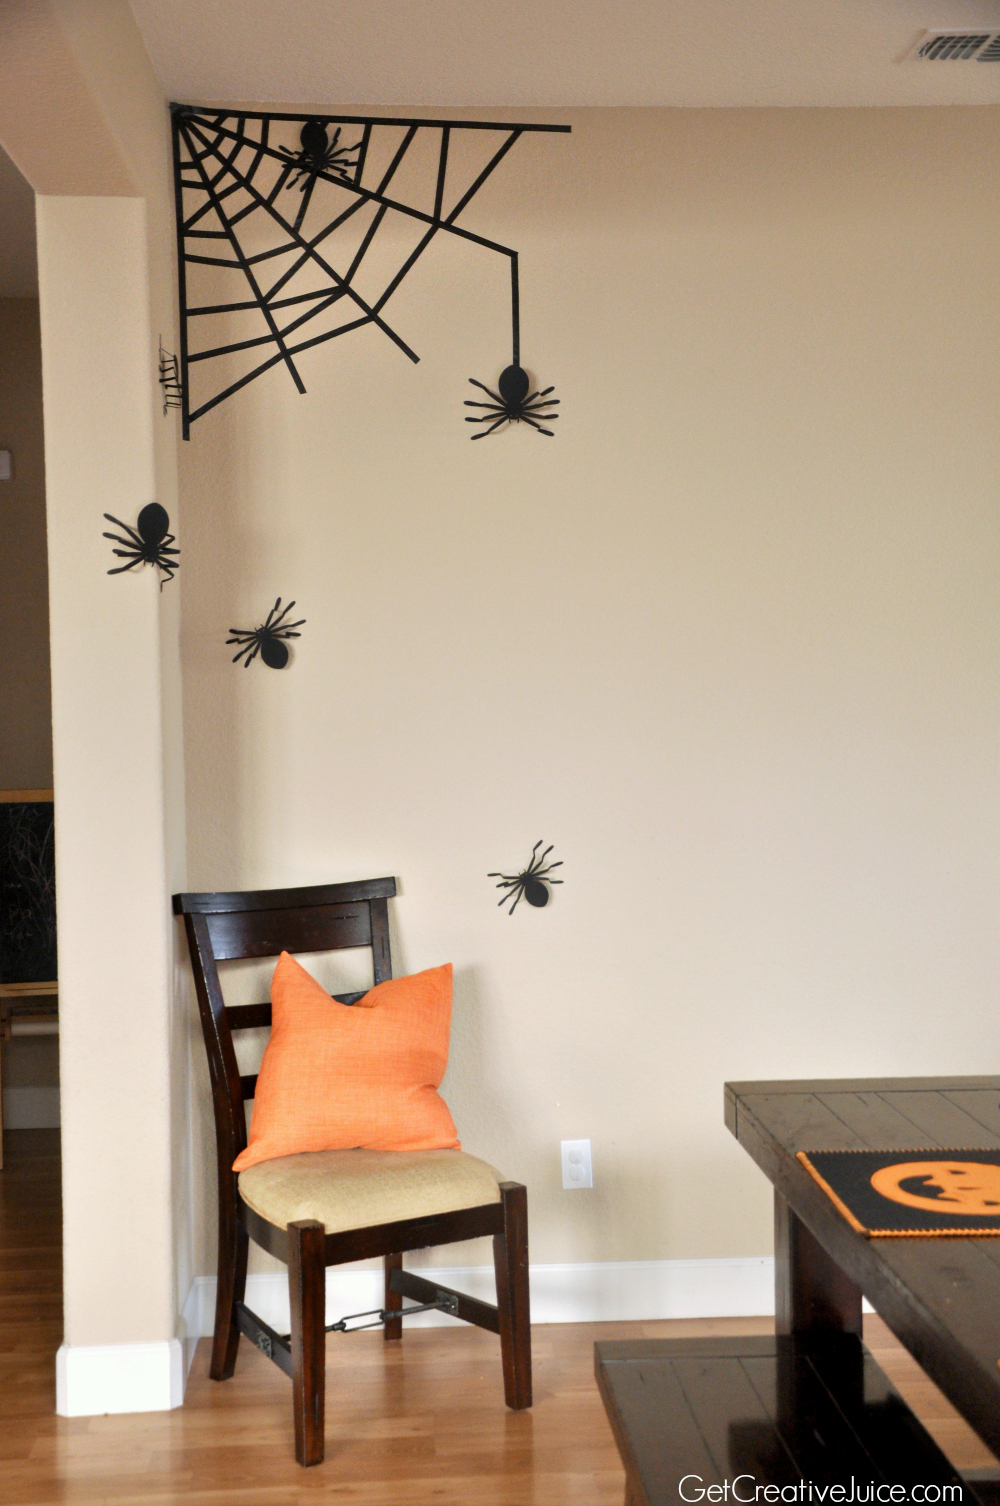 Cute halloween decorations to make -  Washi Tape Spider Web Wall Decor Easy Fast Diy Halloween Decoration